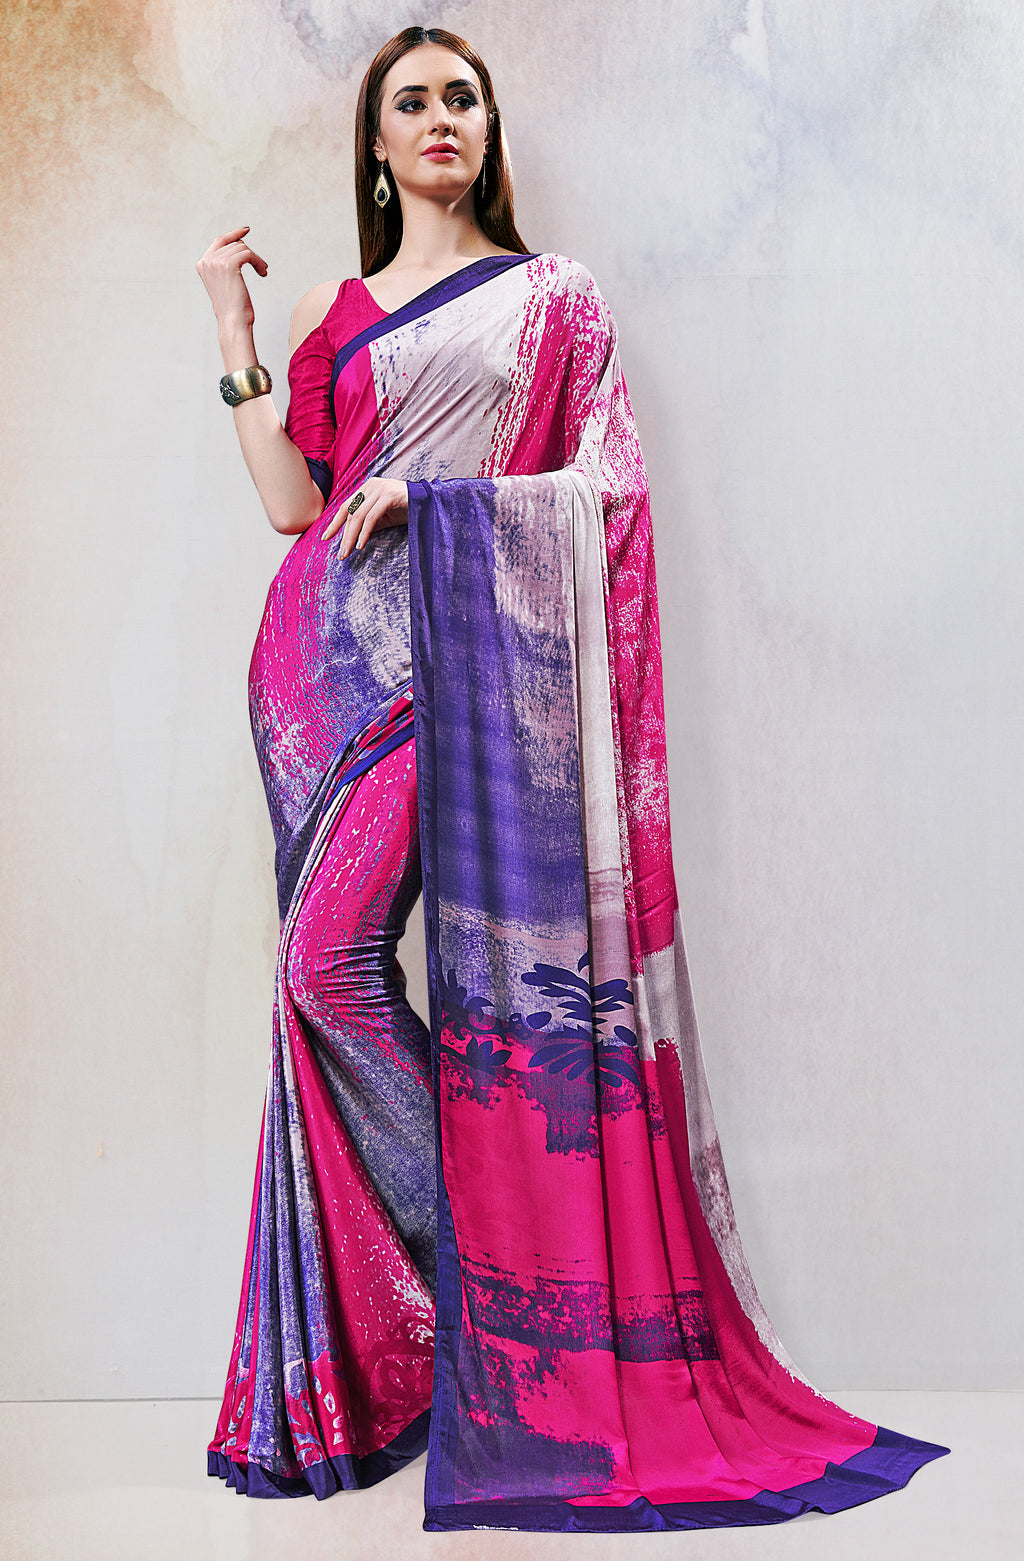 Pink & Blue Color Crepe  Digital Print Kitty Party Sarees NYF-8149